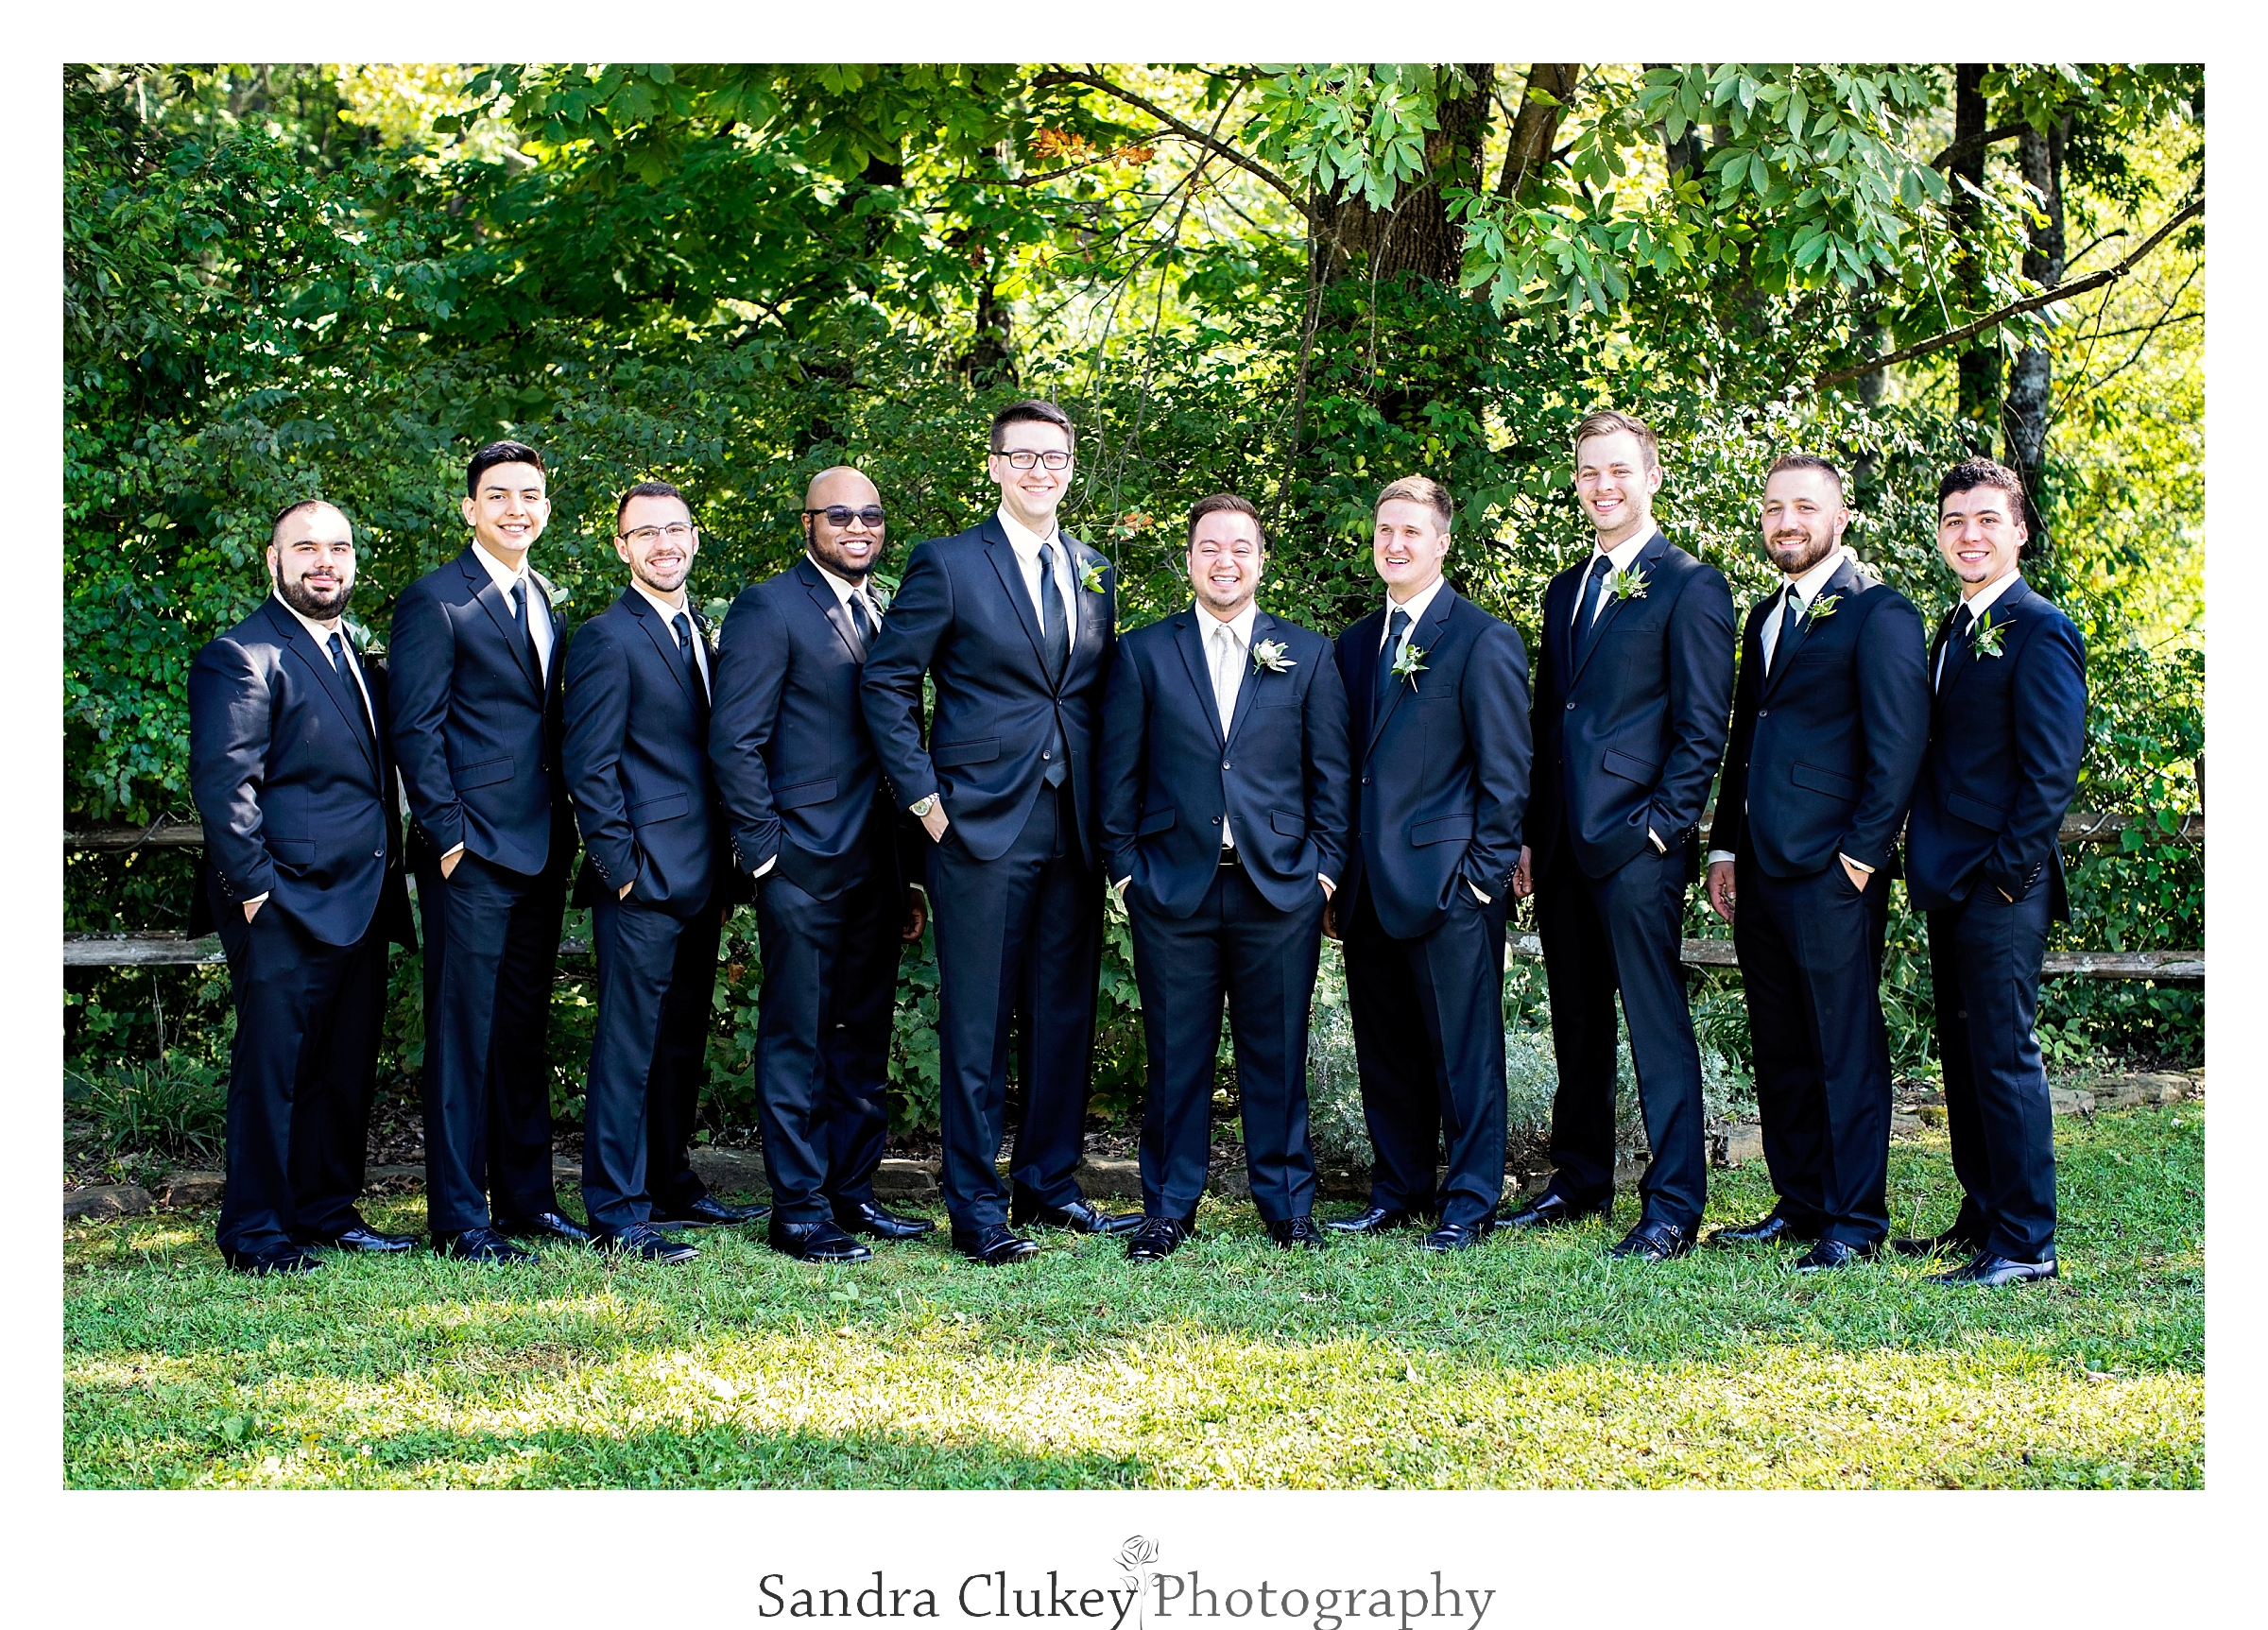 Groom and wedding party at Tennessee RiverPlace, Chattanooga TN